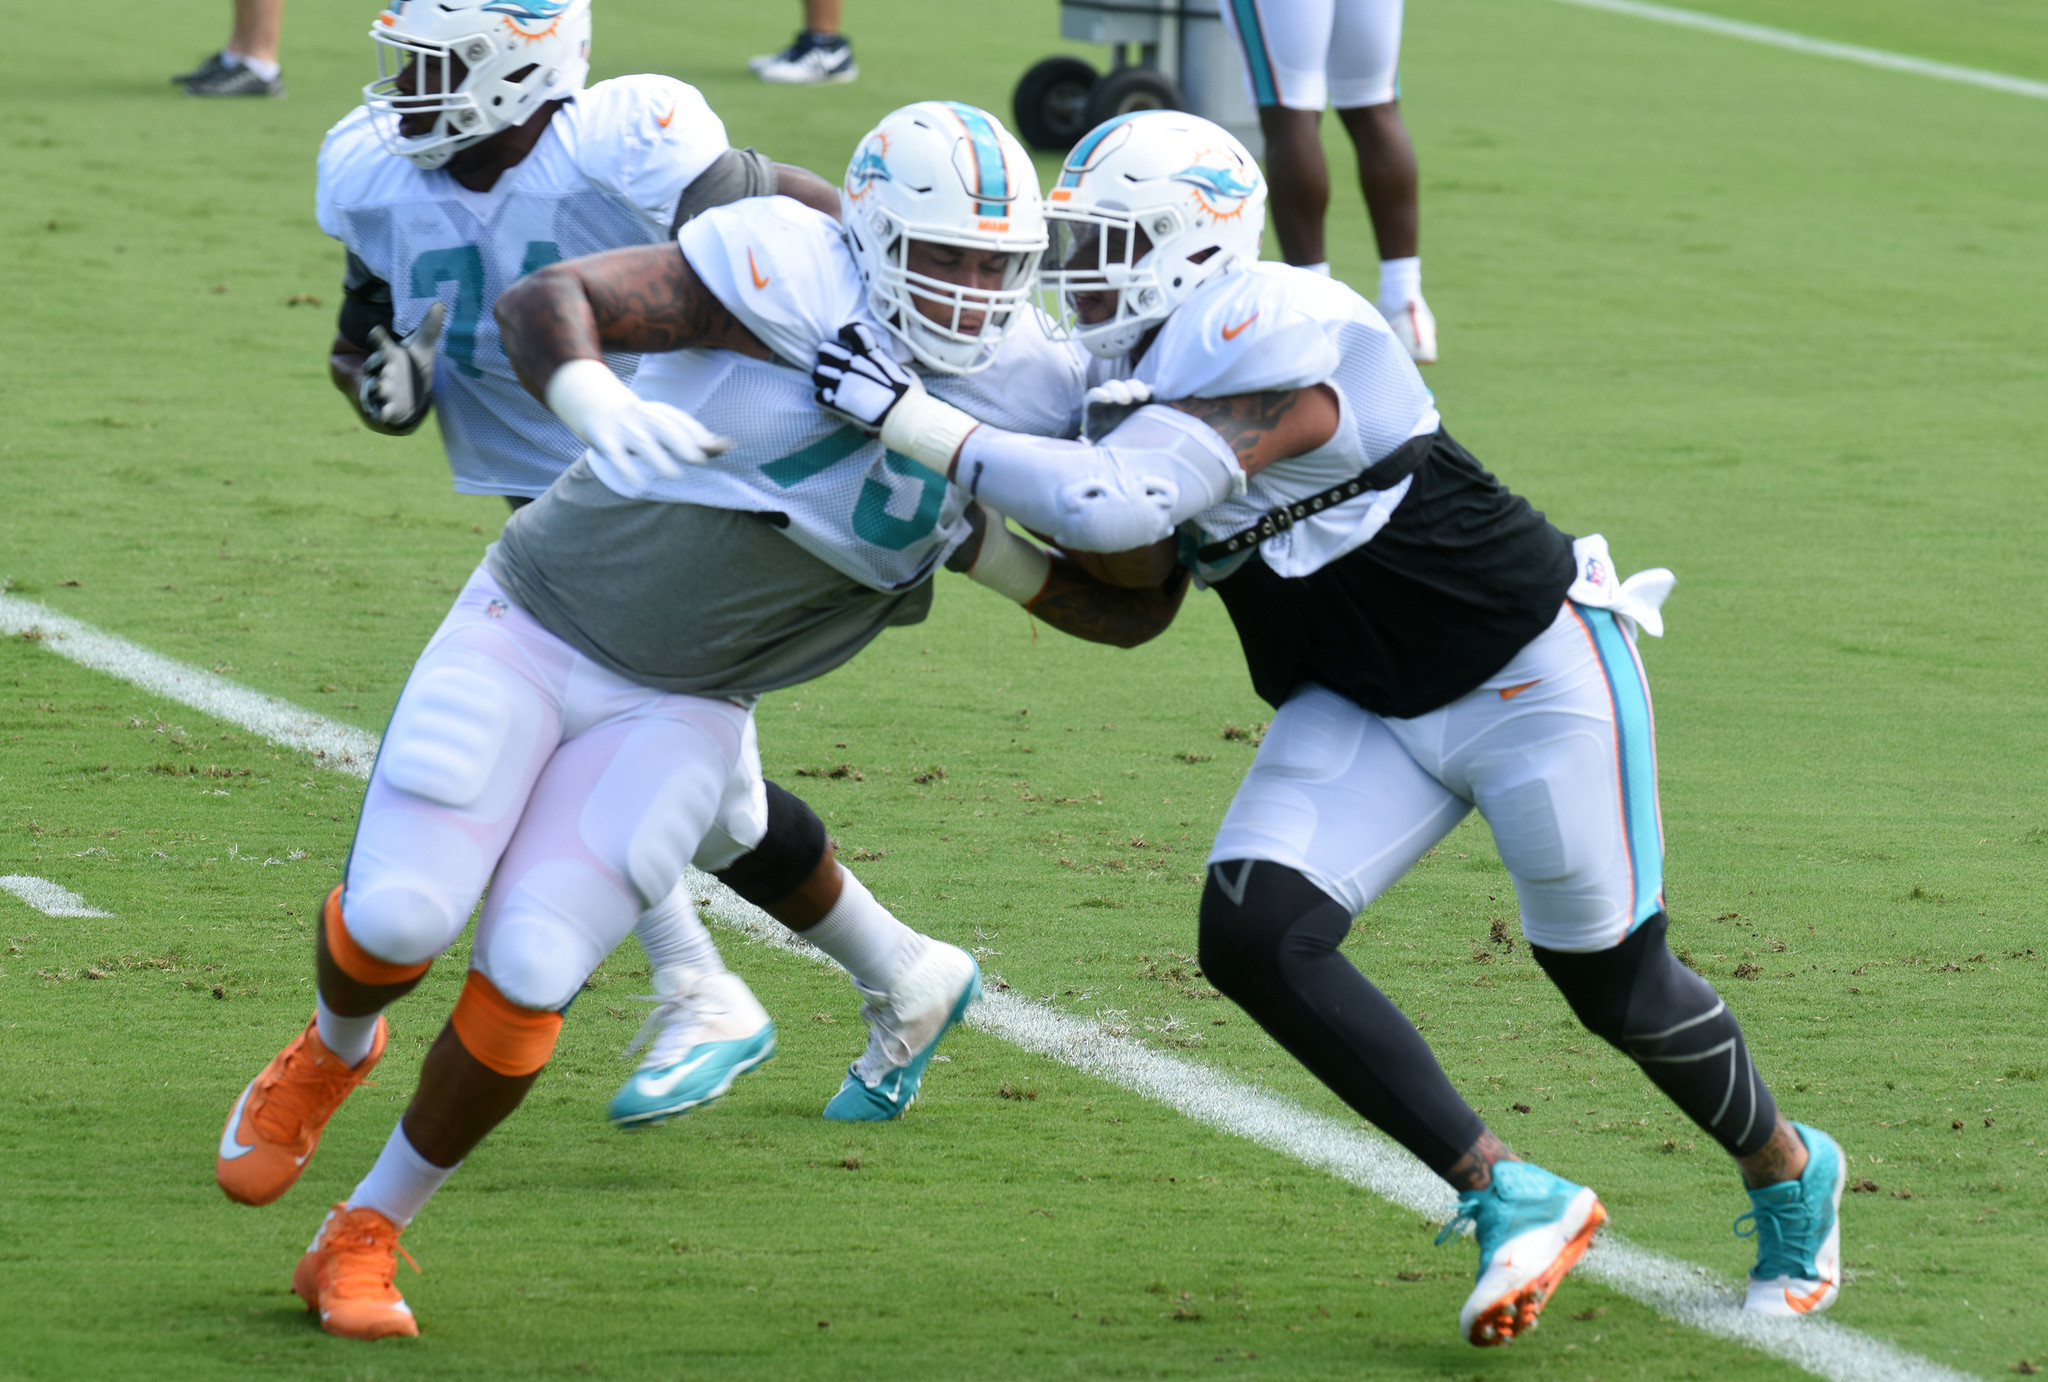 Dolphins hope Pouncey s return can jump start struggling offense